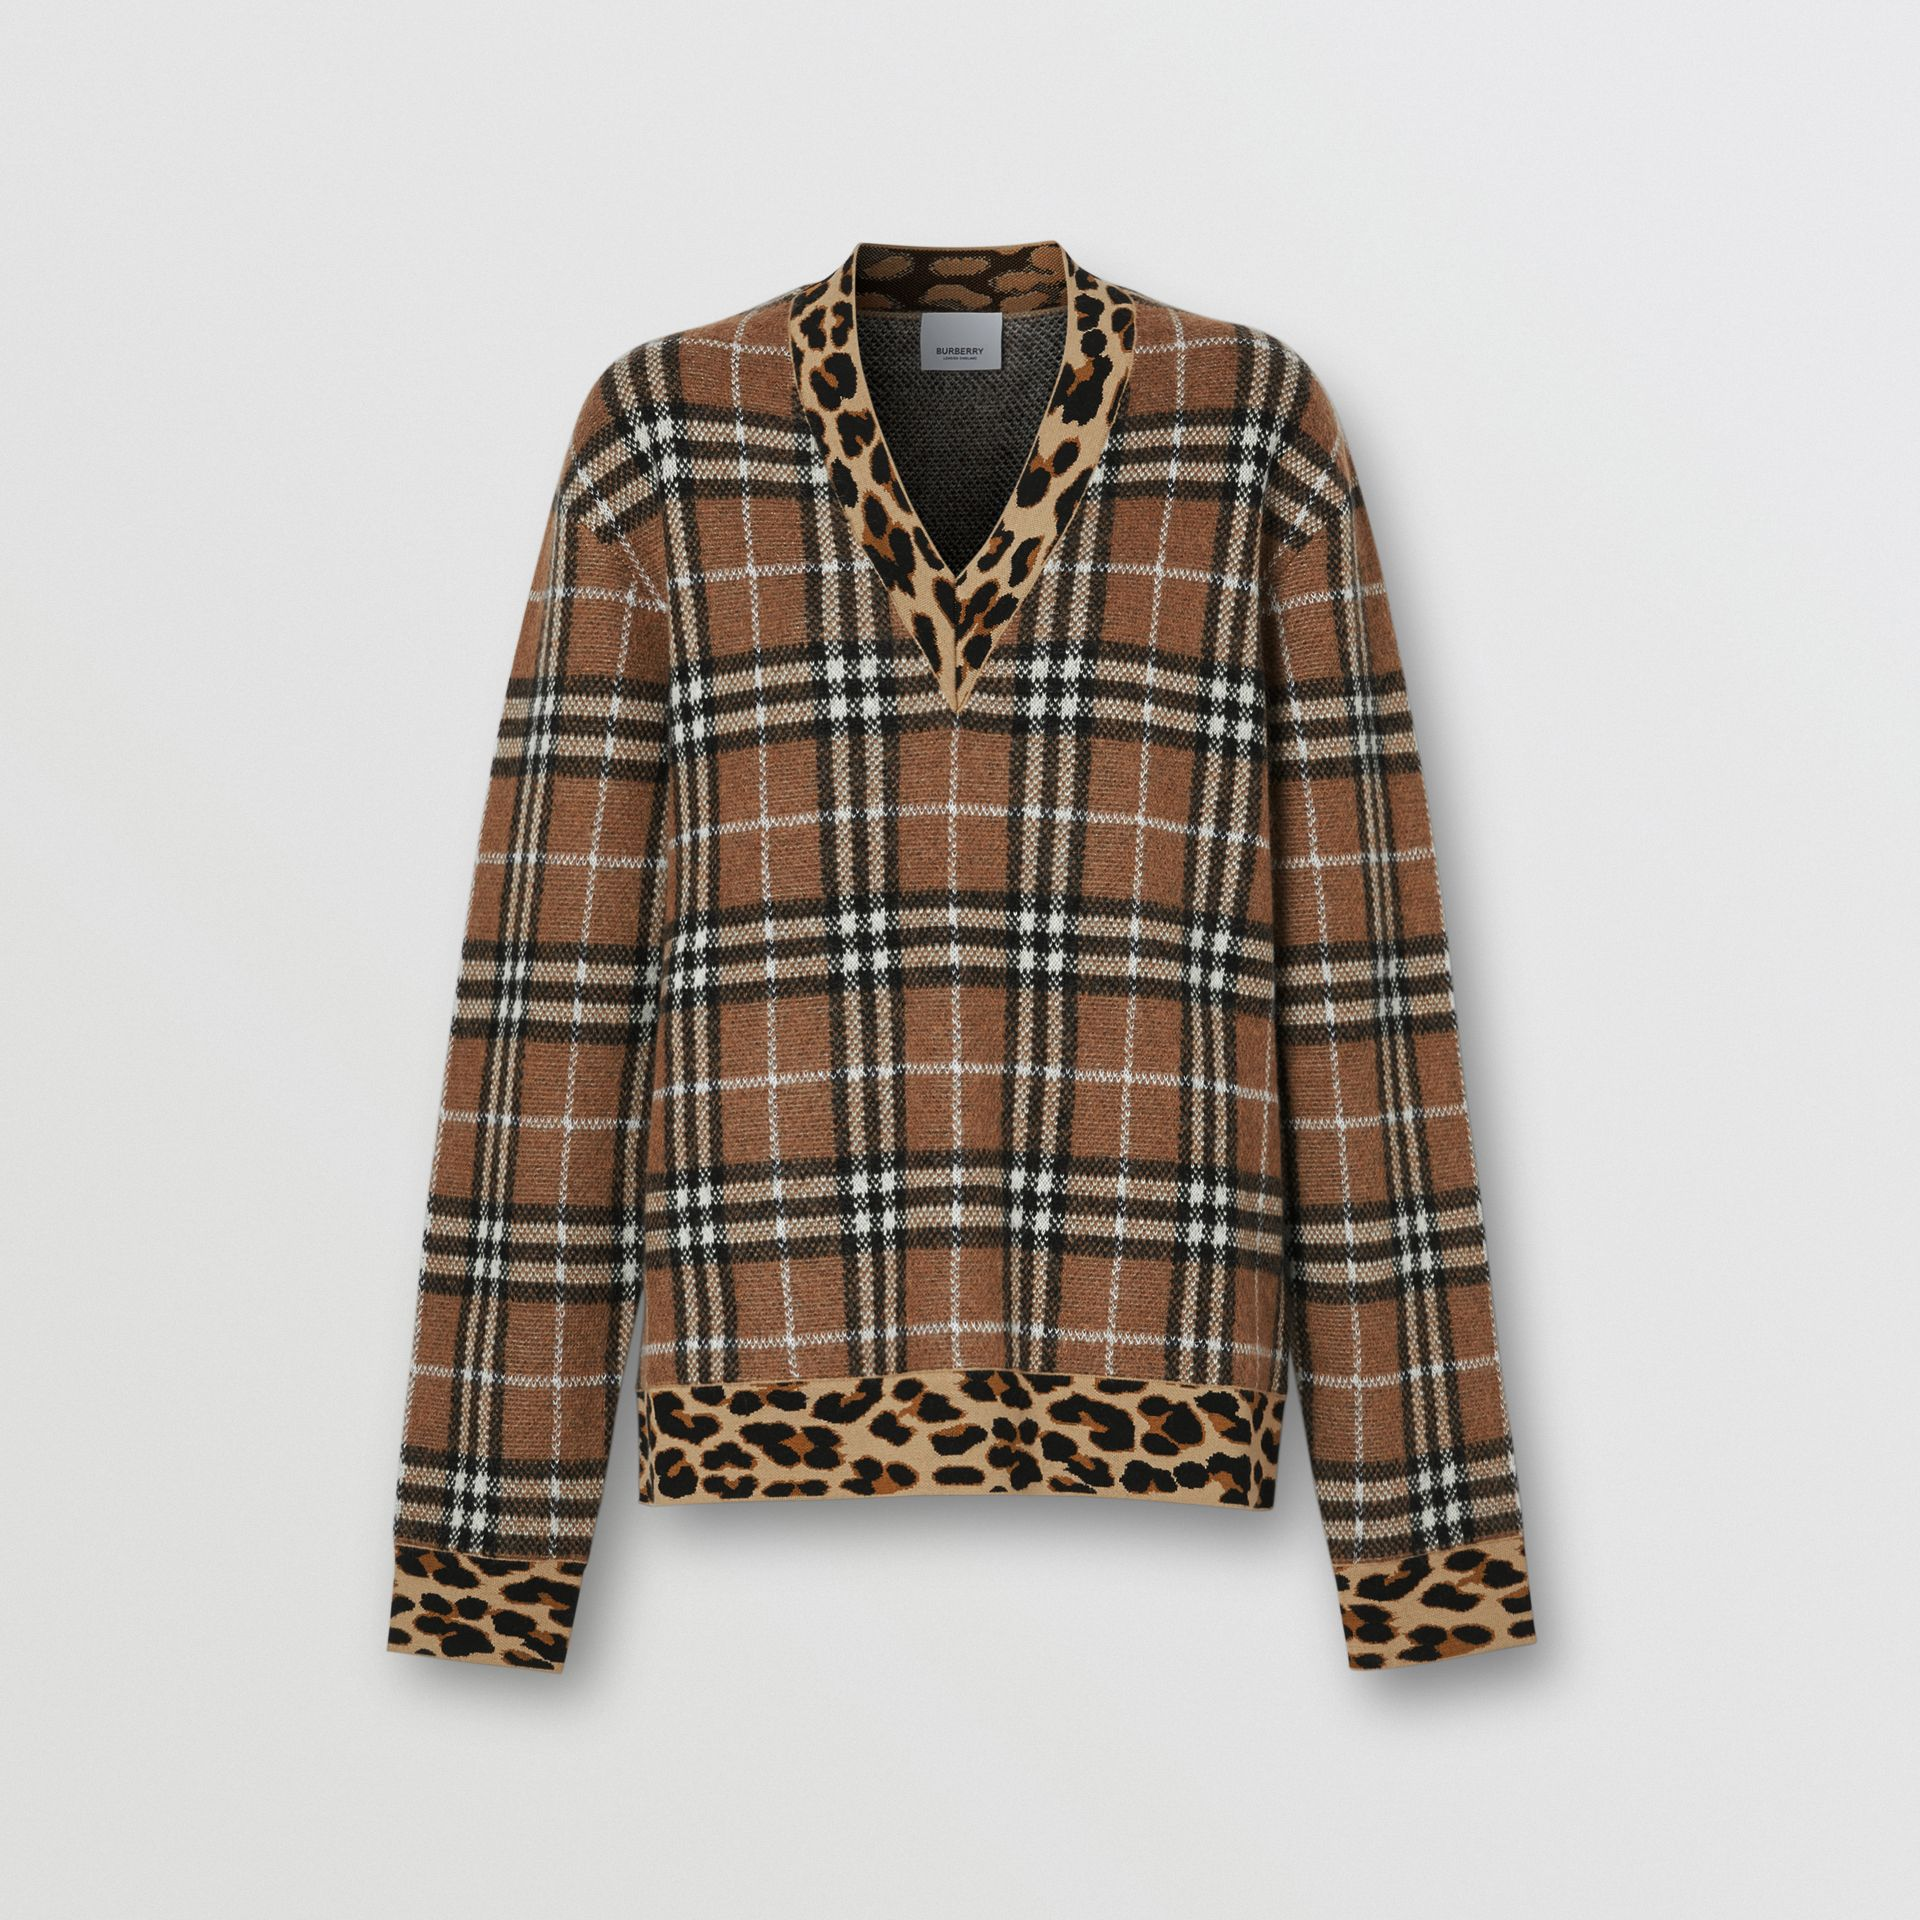 Leopard Detail Vintage Check Cashmere Blend Sweater in Archive Beige - Women | Burberry - gallery image 3